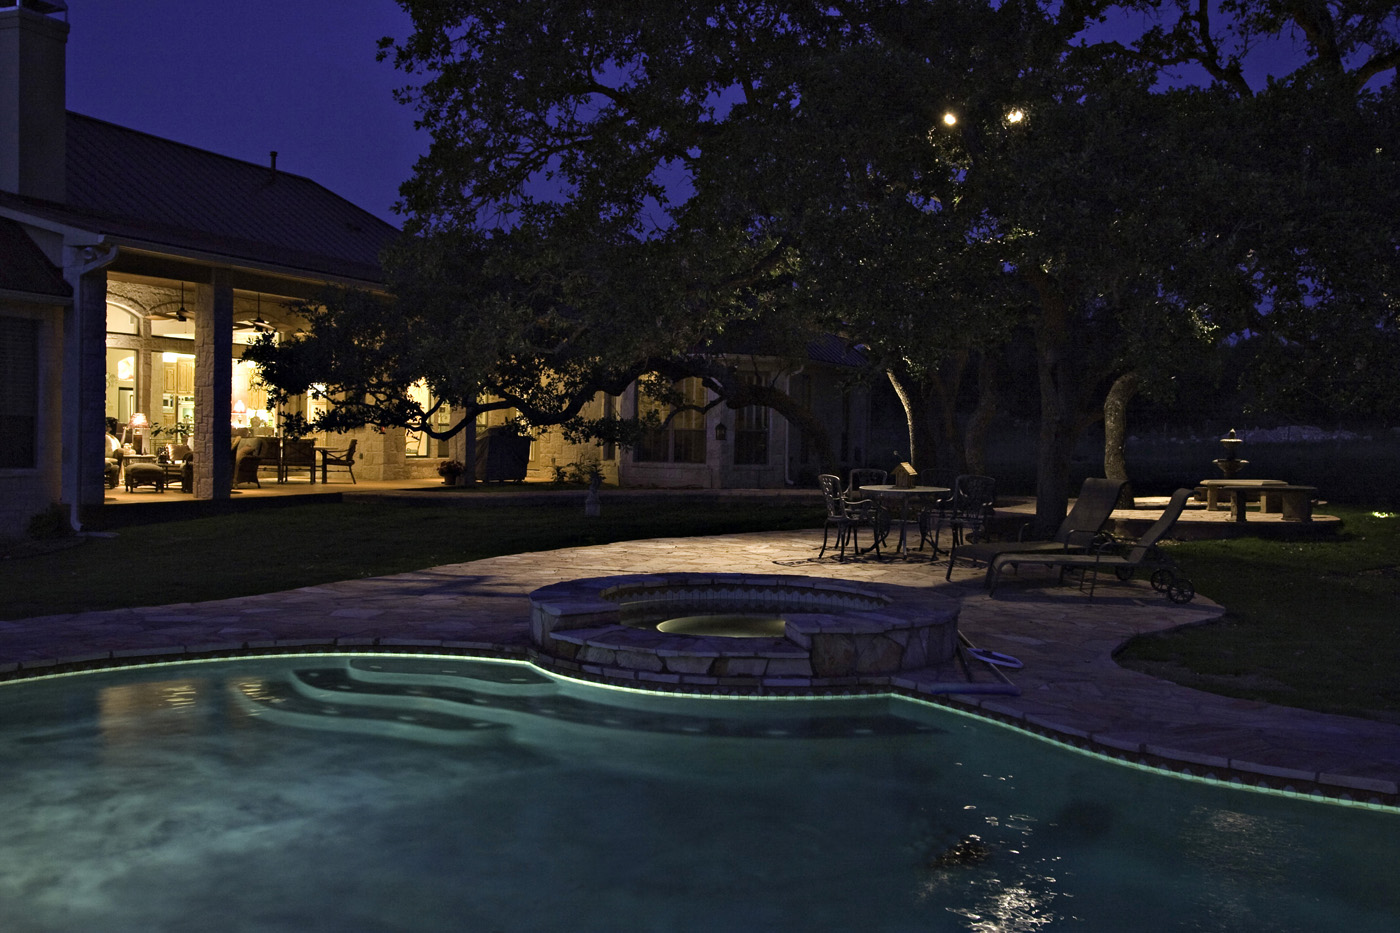 Backyard pool with lighting